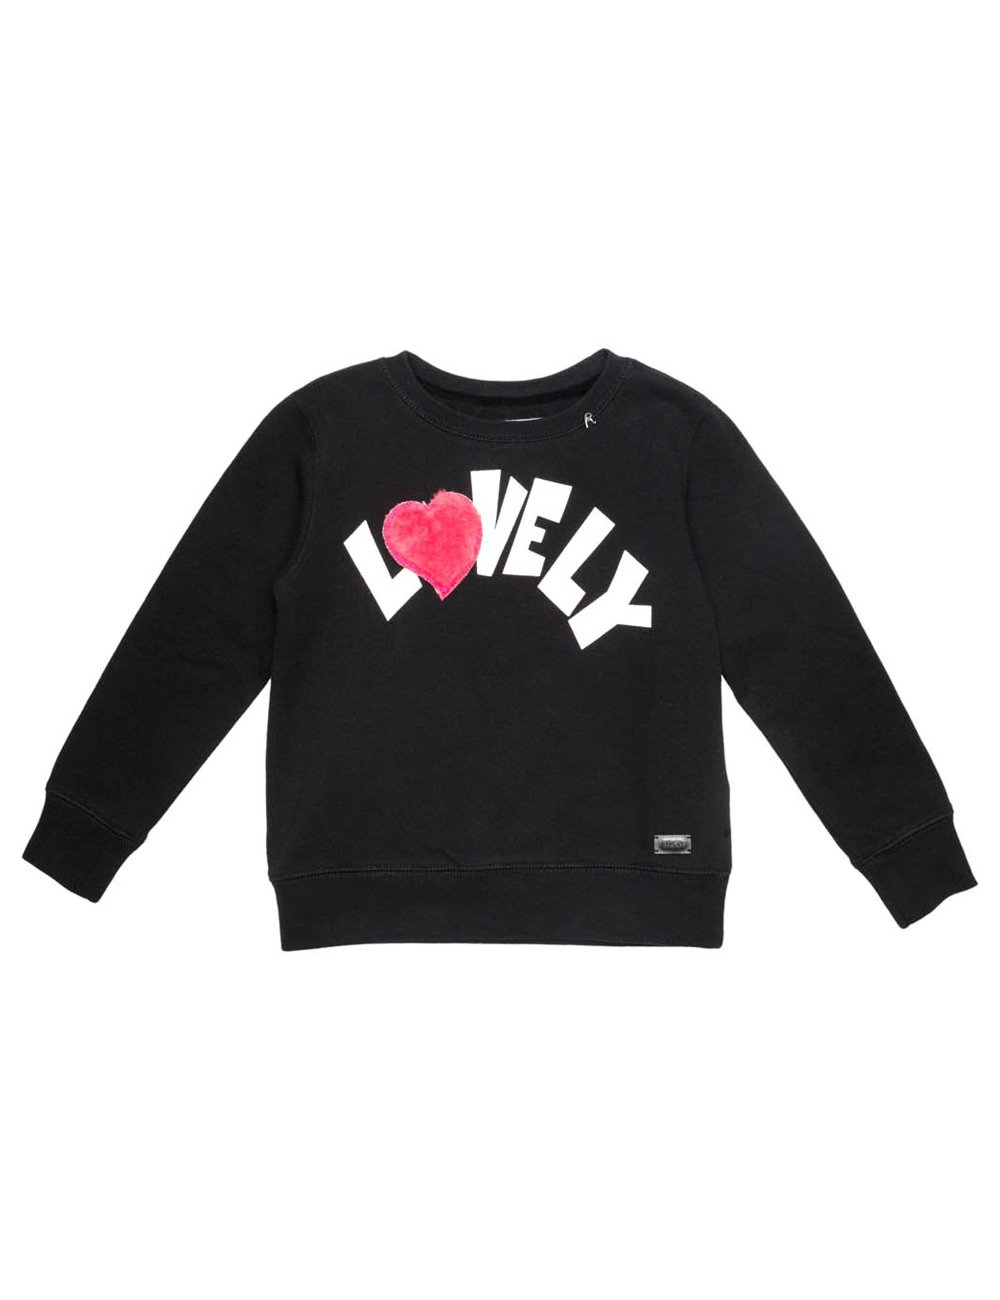 Replay Girls Black Sweater With Print And Faux Fur Detail in Size 10 Years Black